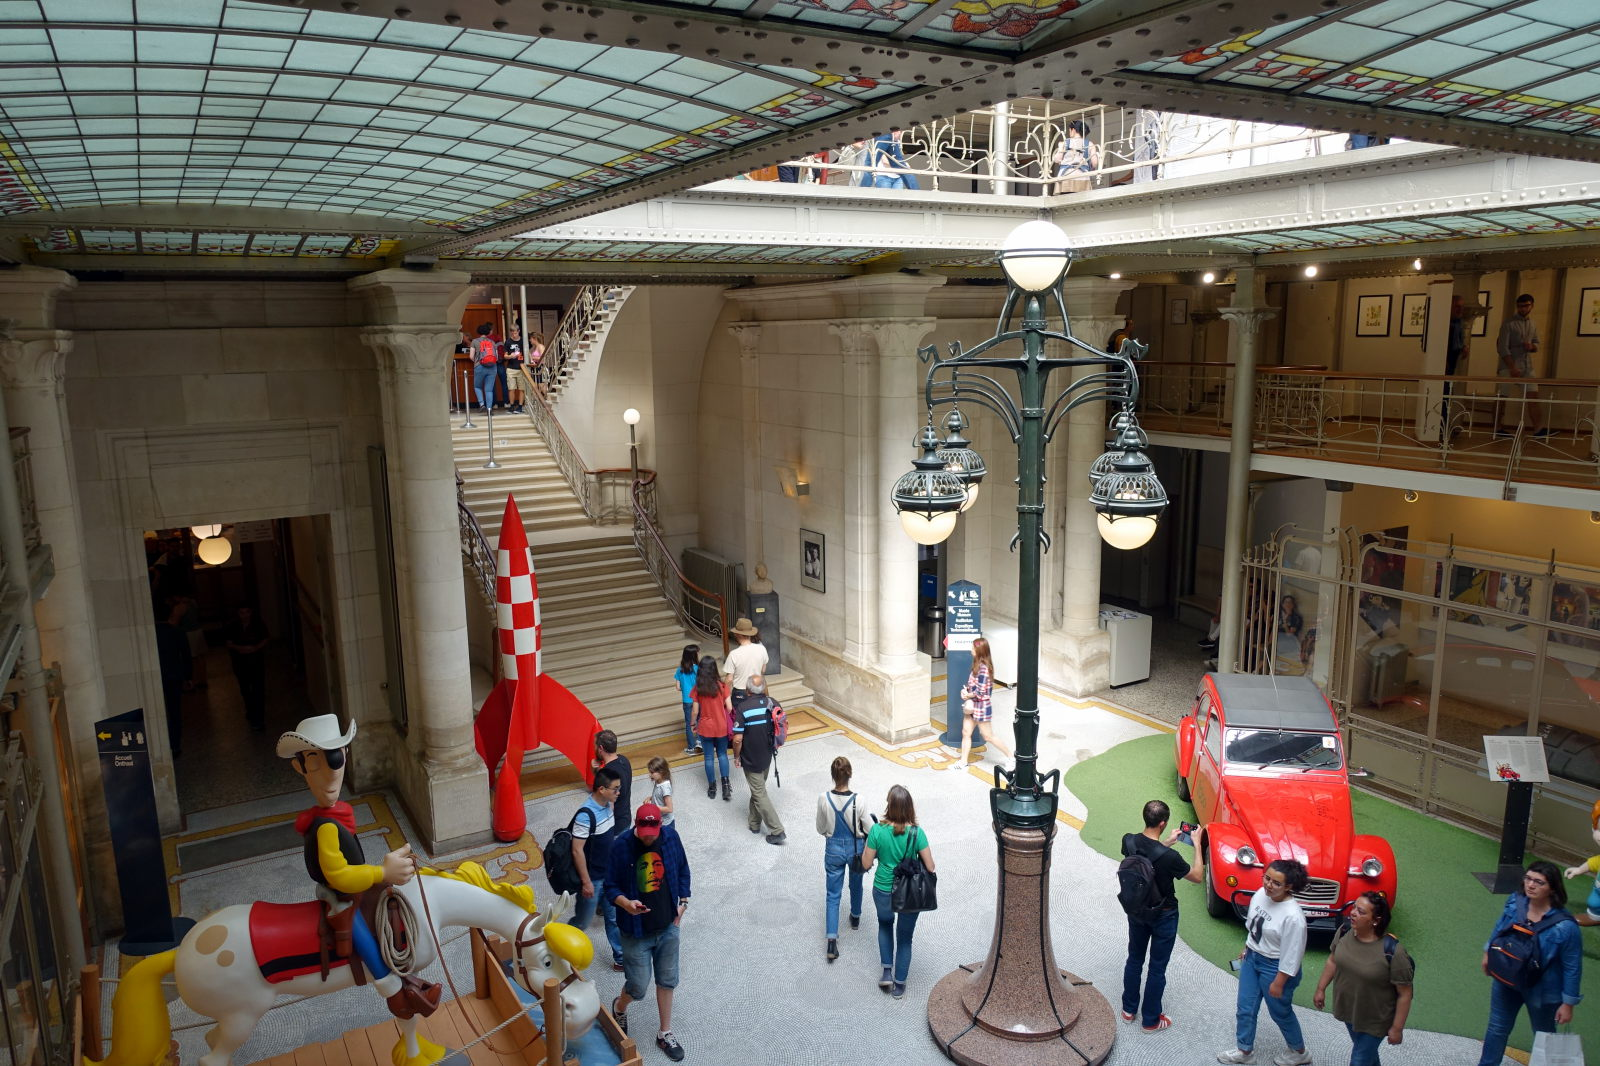 Picture shows interior of the building. A rocket from Tintin and large Lucky Luke on a horse statue are visible.